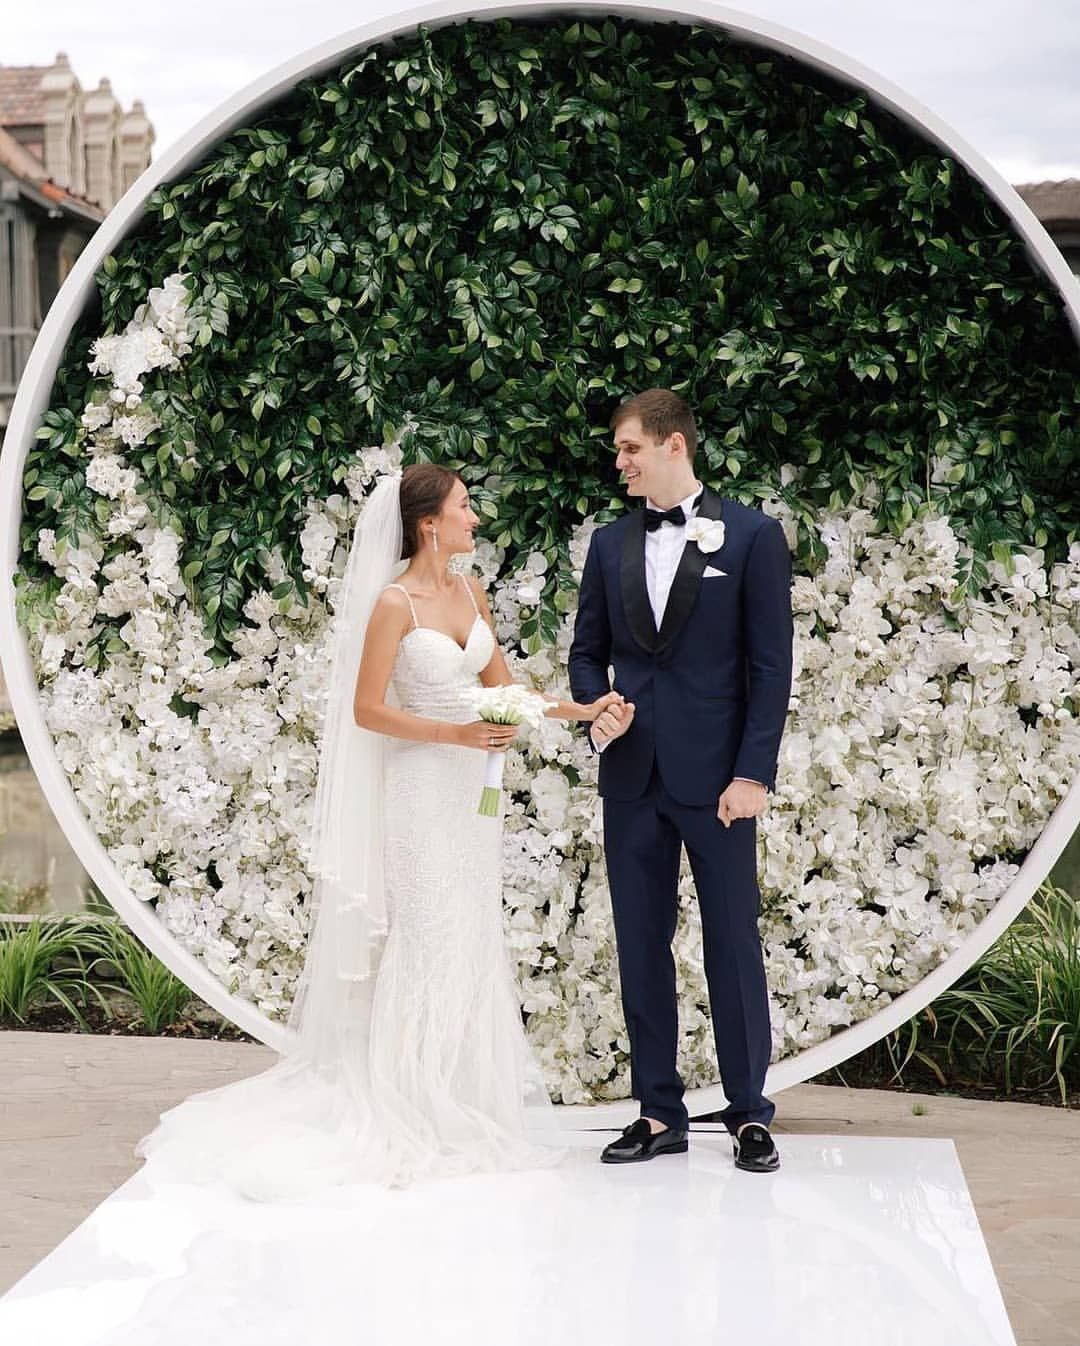 30 Unique And Breathtaking Wedding Backdrop Ideas: We Know Our Brides Like To Wow Their Guests 🙌🙌 Stand Out